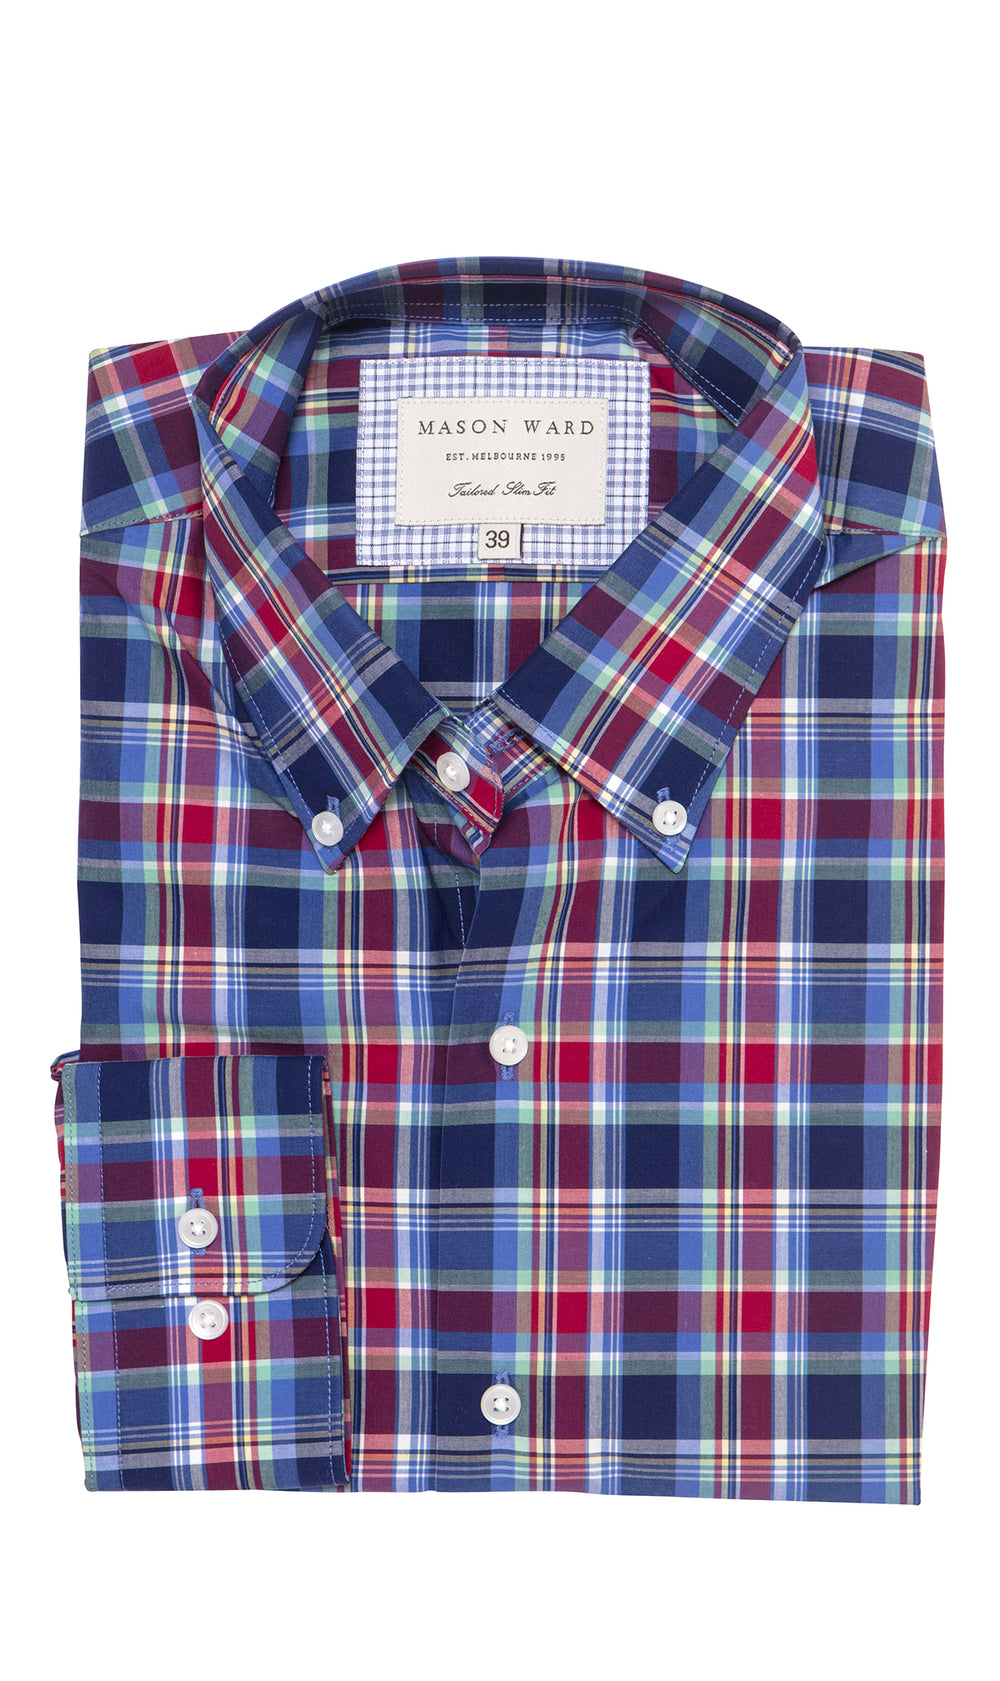 Mason Ward Trelleborg Casual Check Slim Fit/ Regular Cuff Shirt